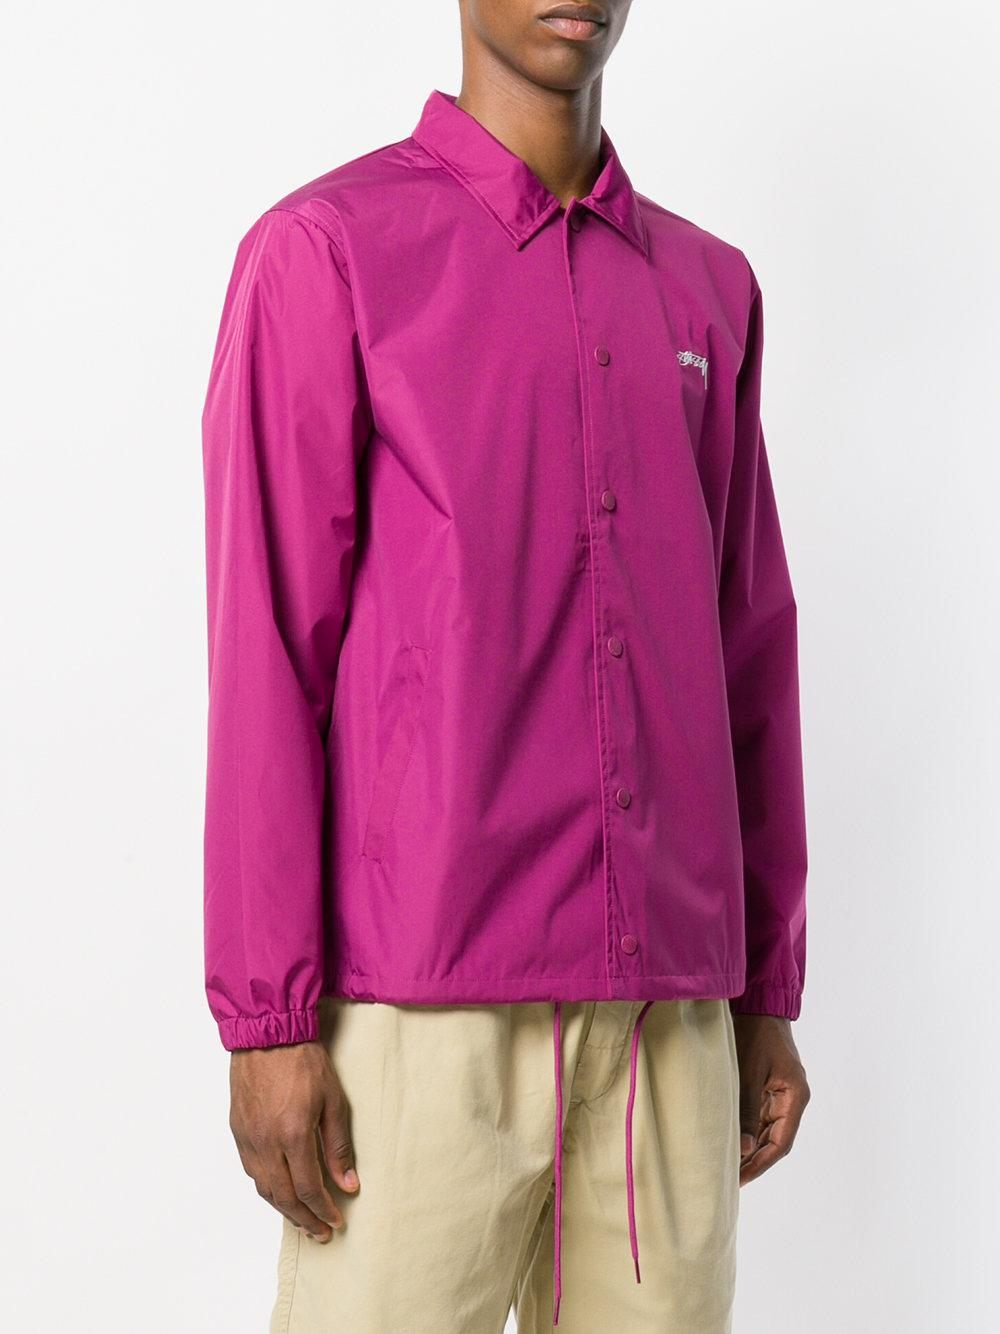 Stussy Cotton Button Shirt Jacket in Pink & Purple (Pink) for Men